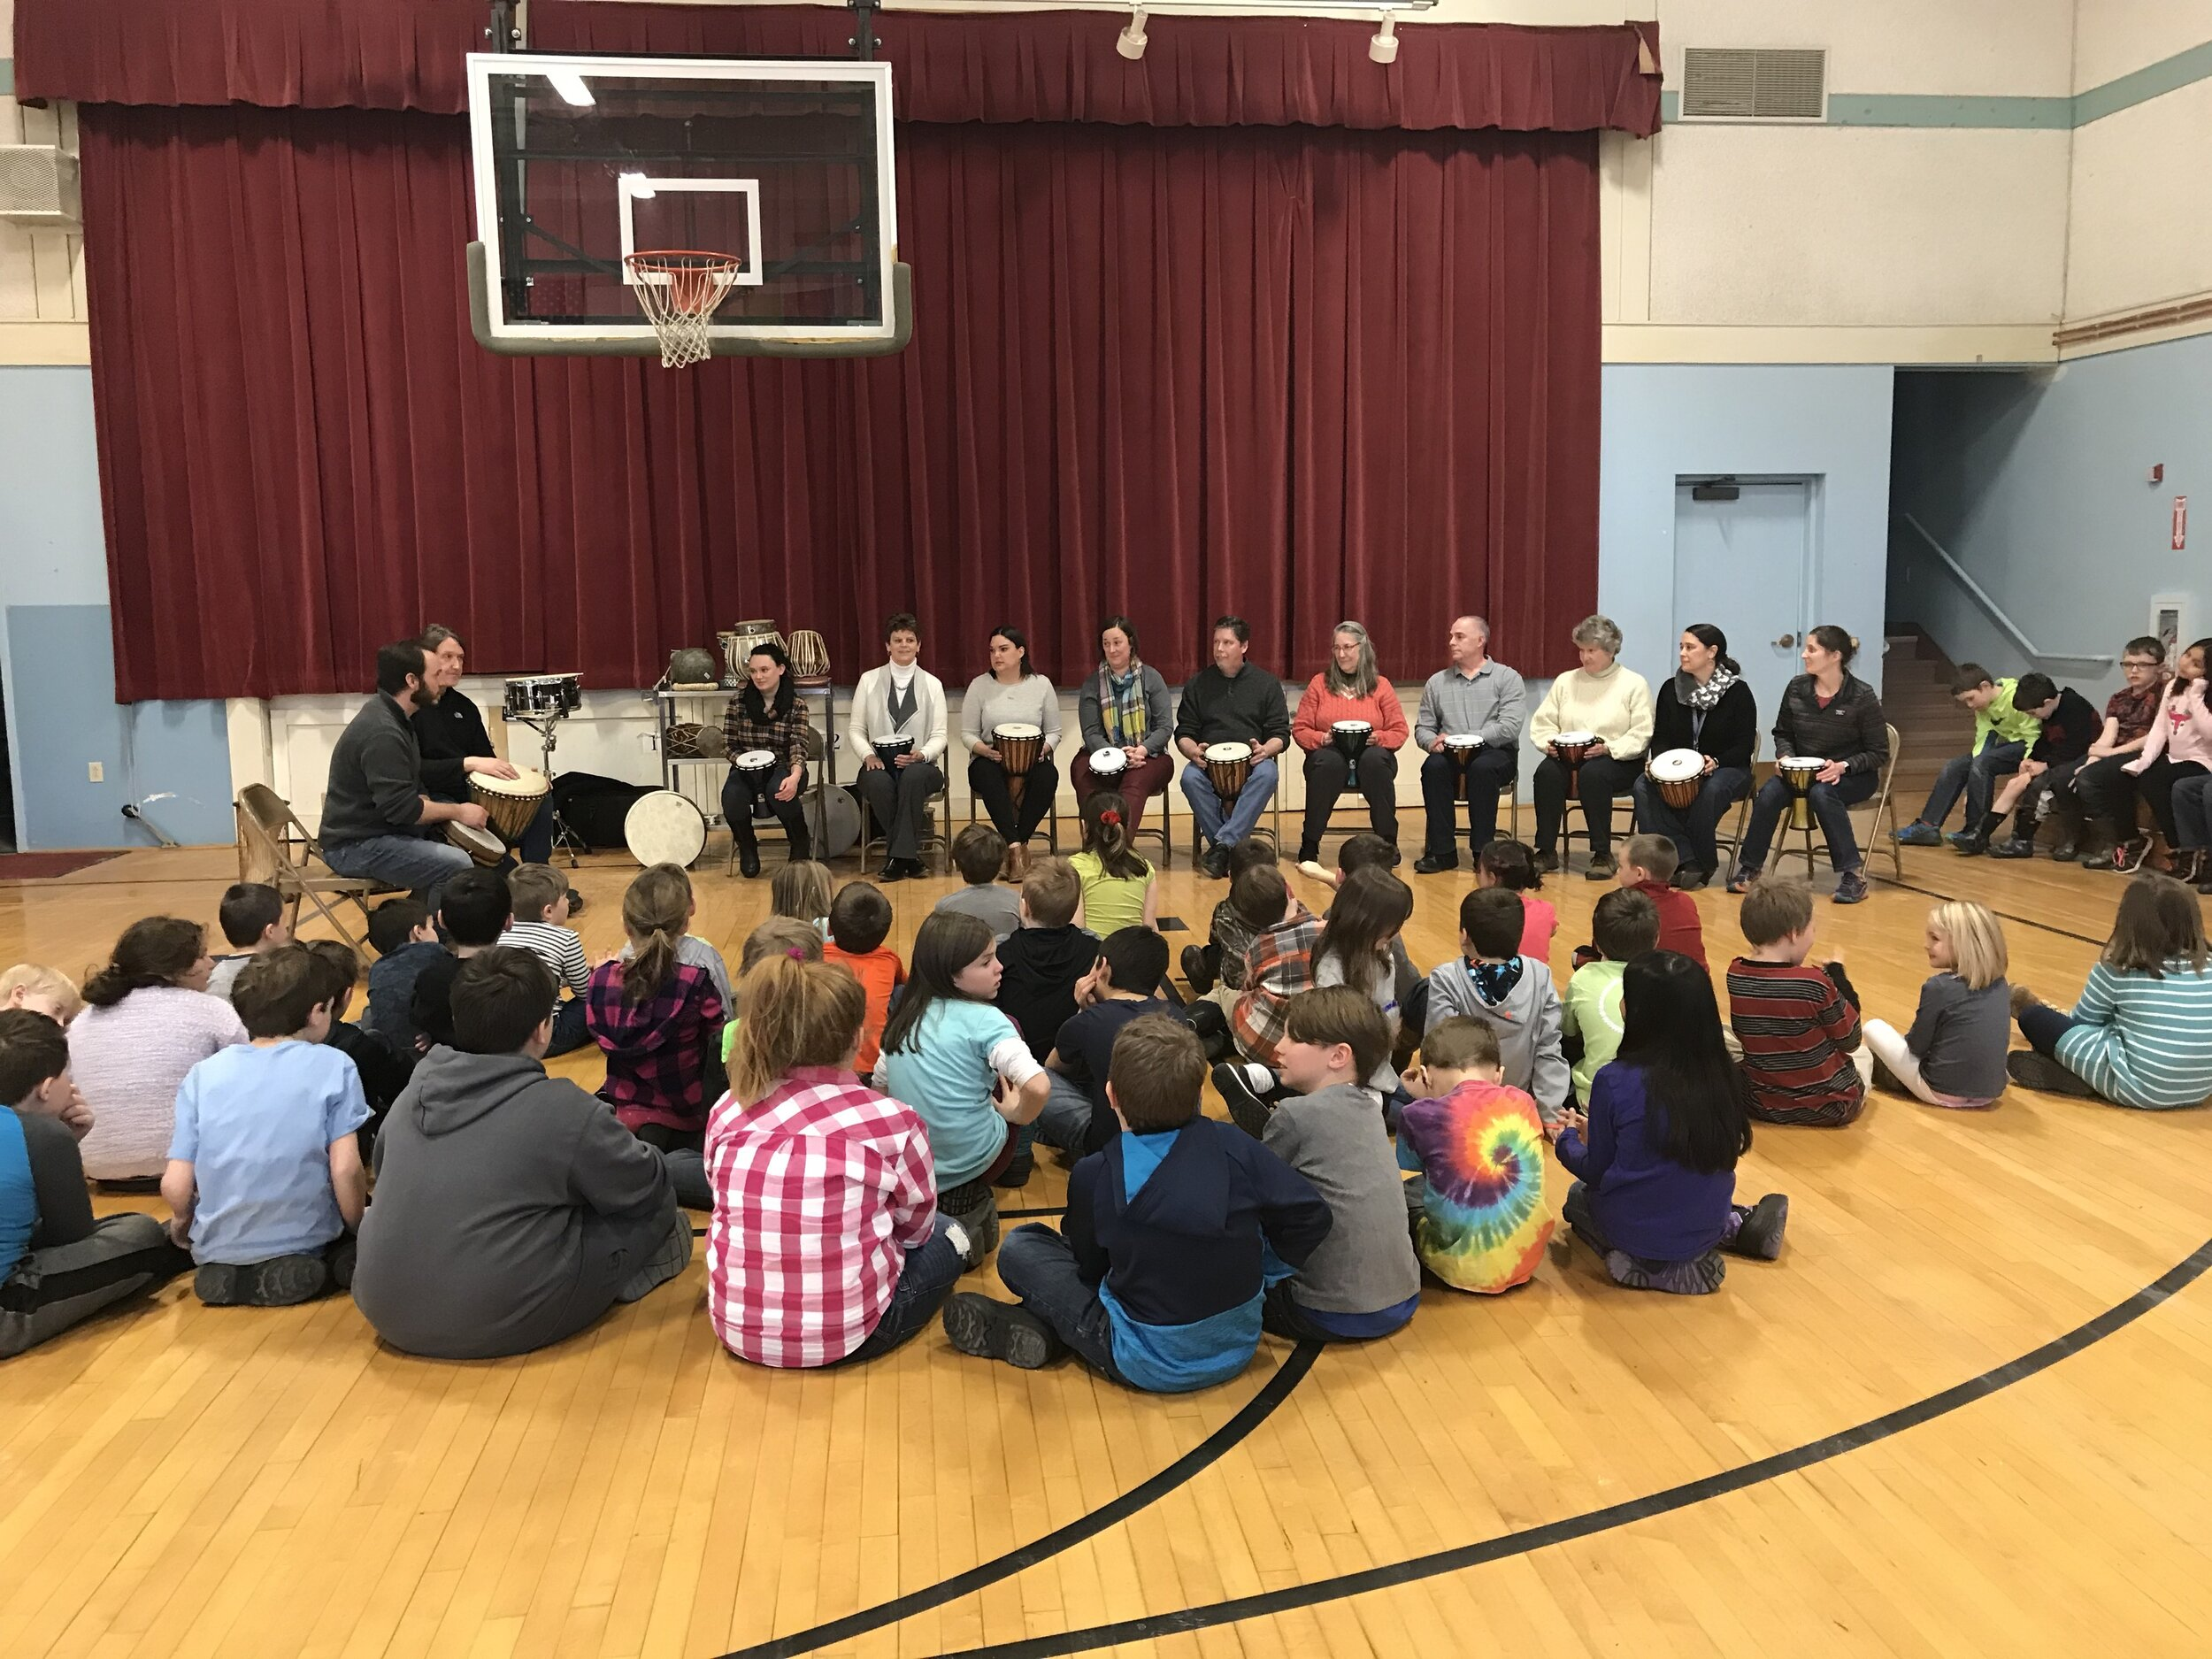 Tom Ulichny and Drew leading an interactive drum circle at a local elementary school.